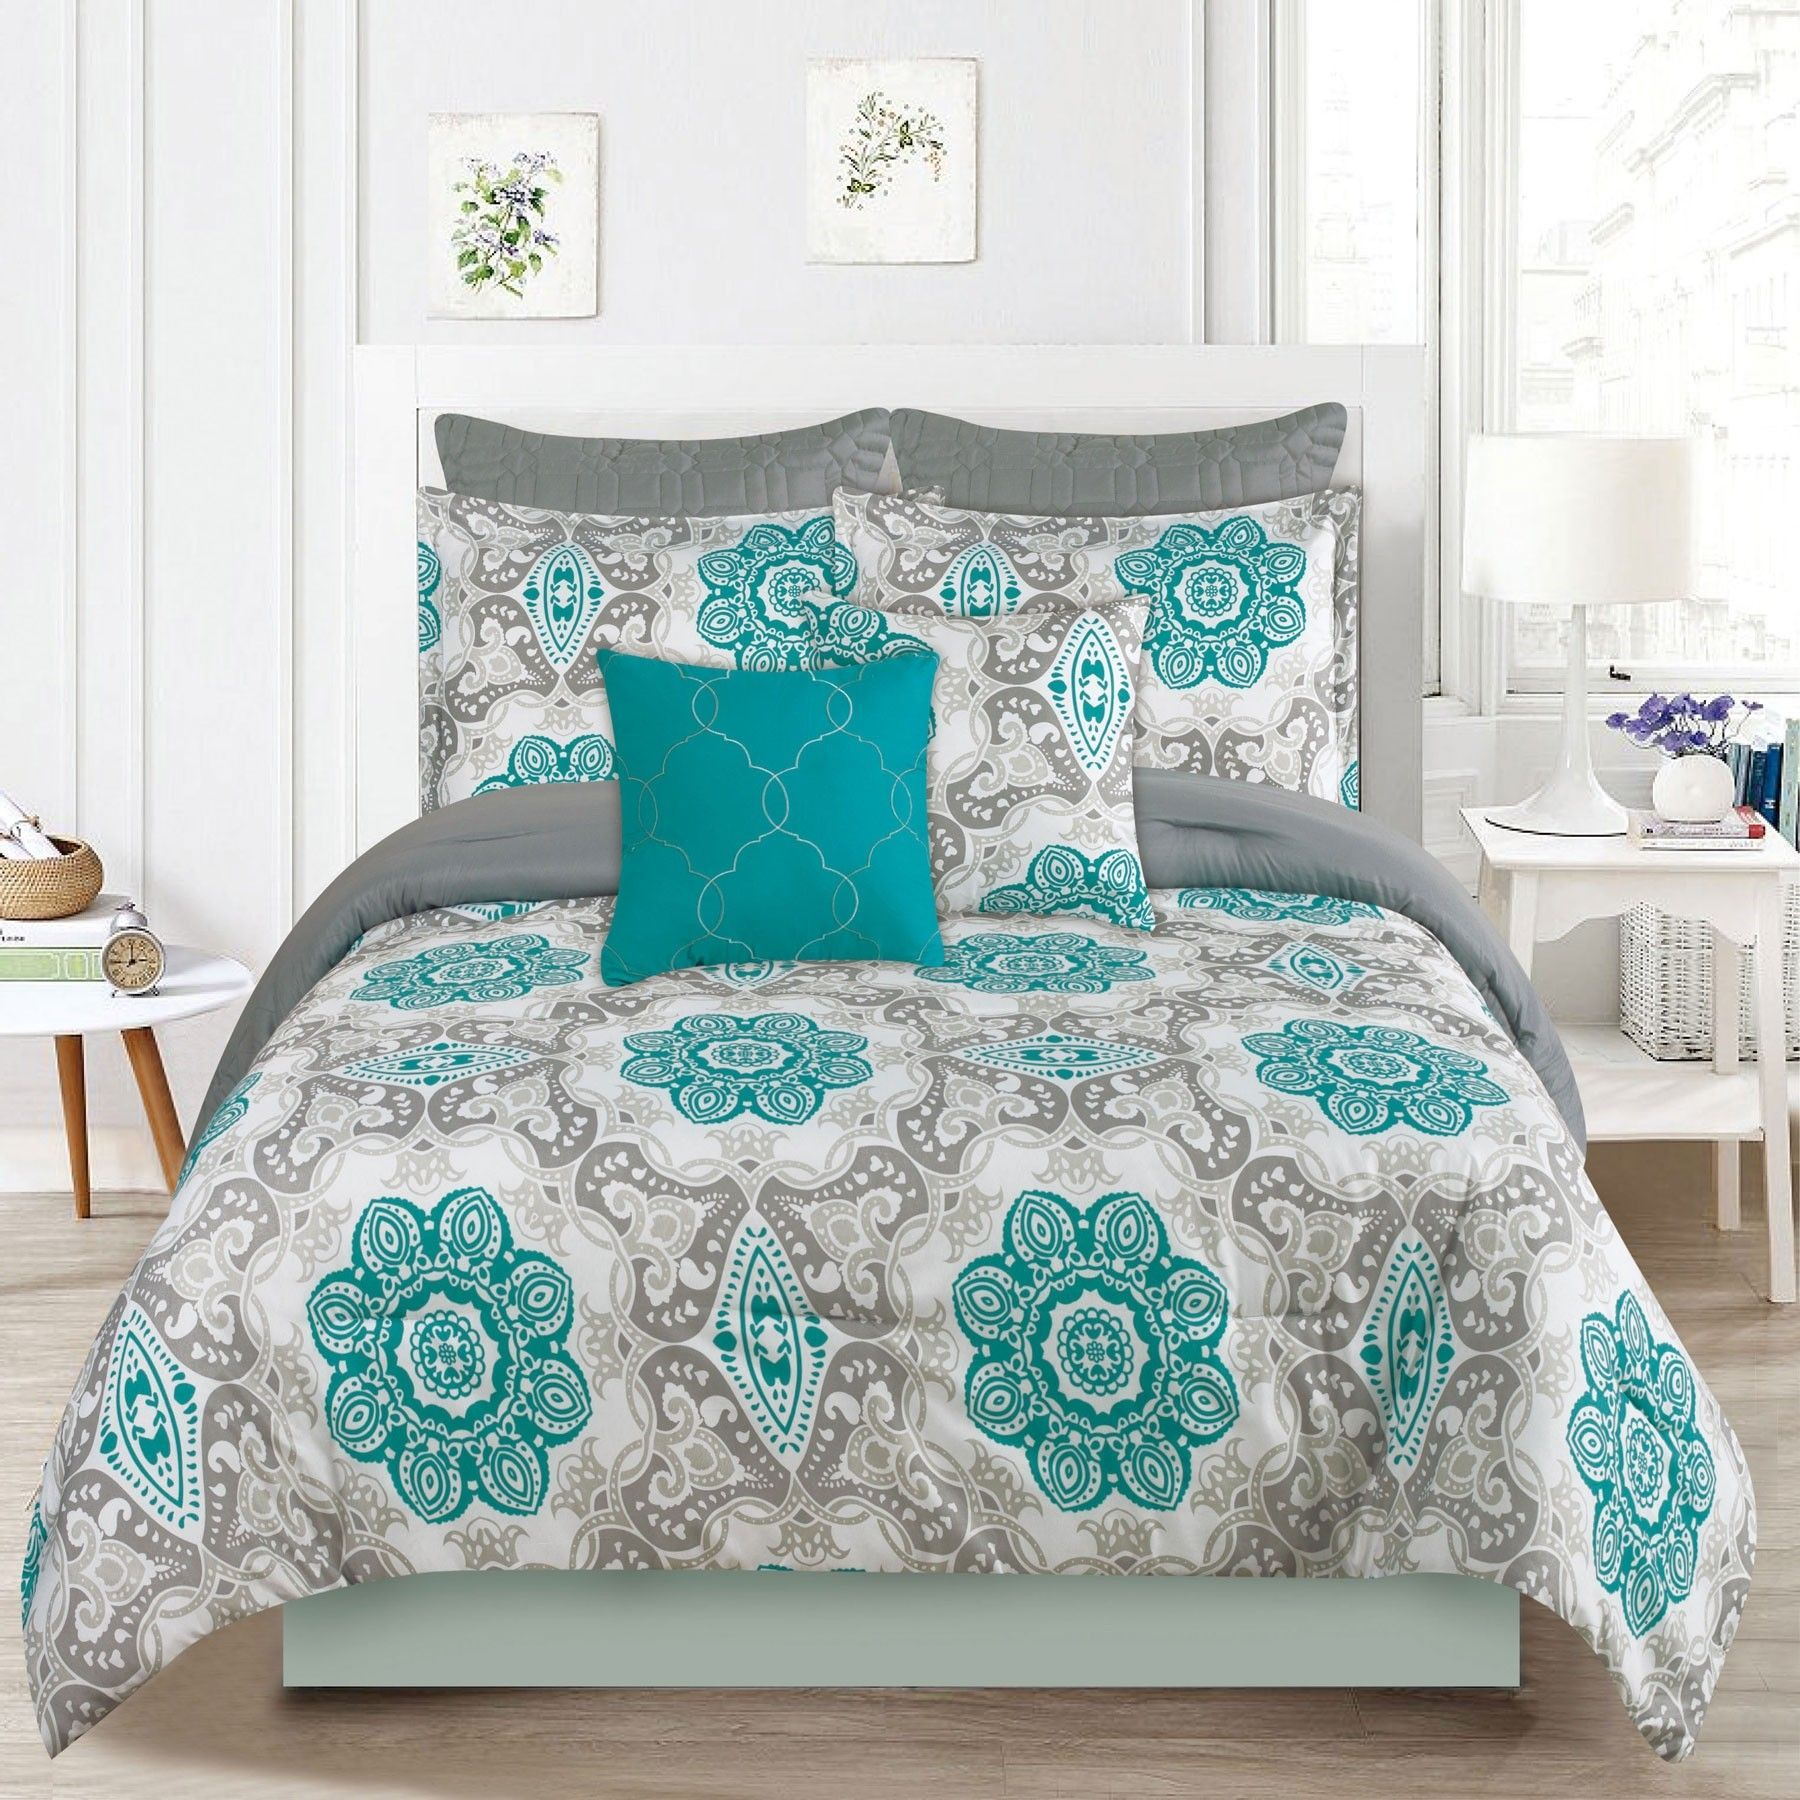 crest home sunrise queen size bedding comforter 7 pc bed set teal